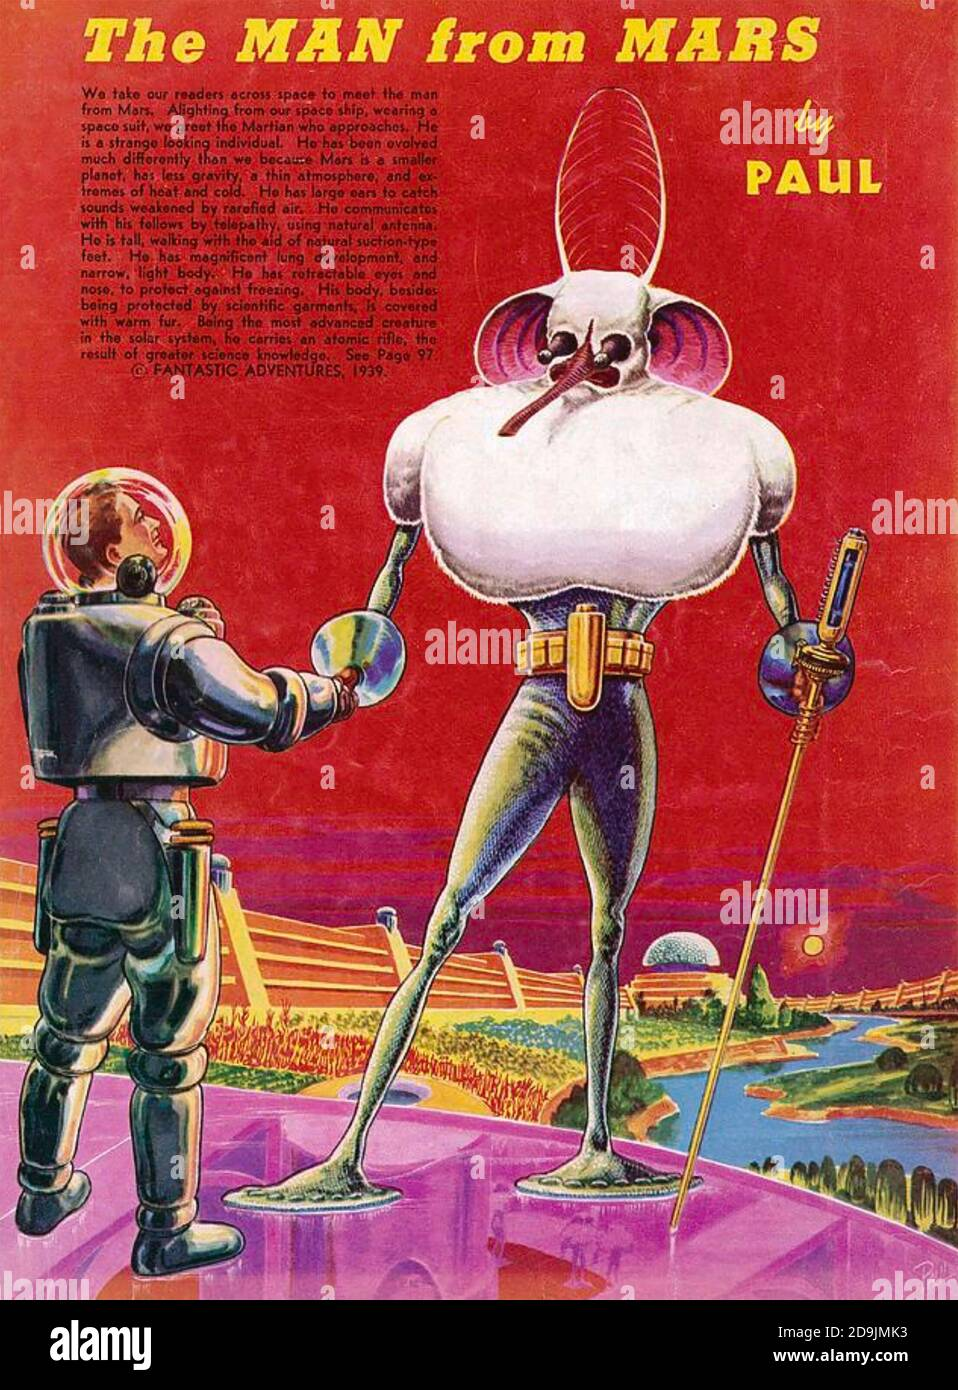 FANTASTIC ADVENTURES magazine. The man from Mars in a 1939 edition of the American sci-fi magazine. Stock Photo